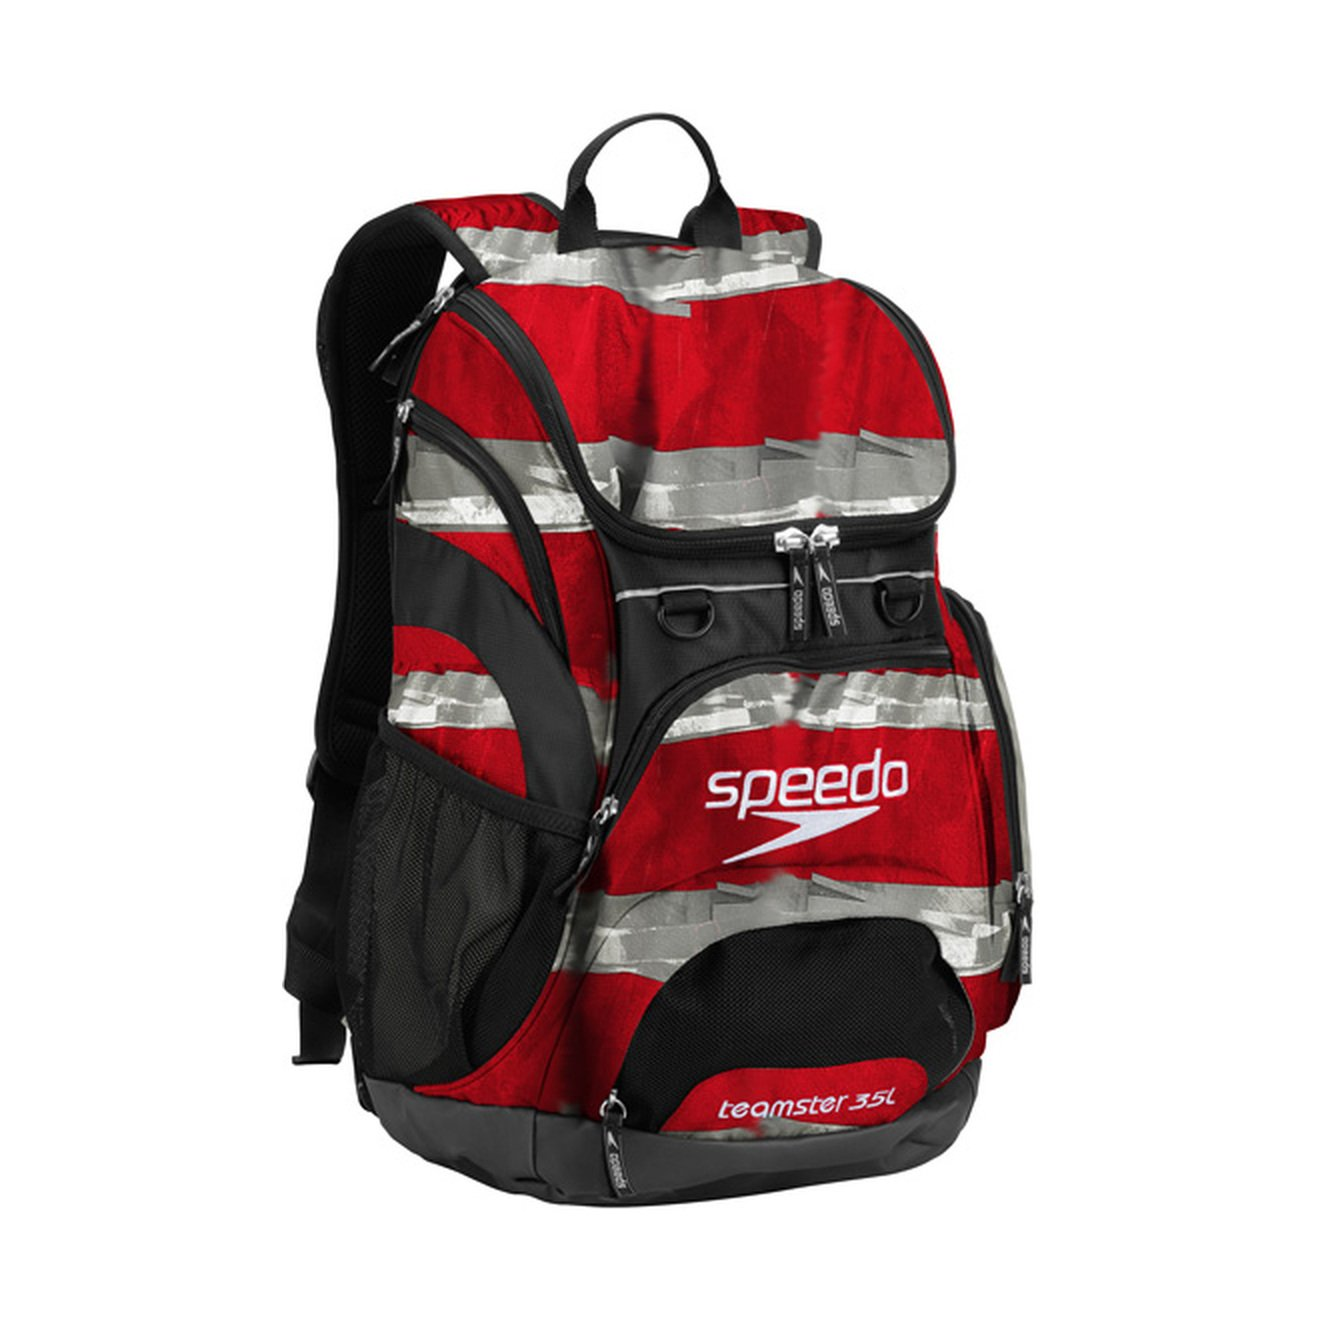 d3419681206d Amazon.com  Speedo Teamster Backpack 35L Setting Sun Red  Metro Swim Shop  Online